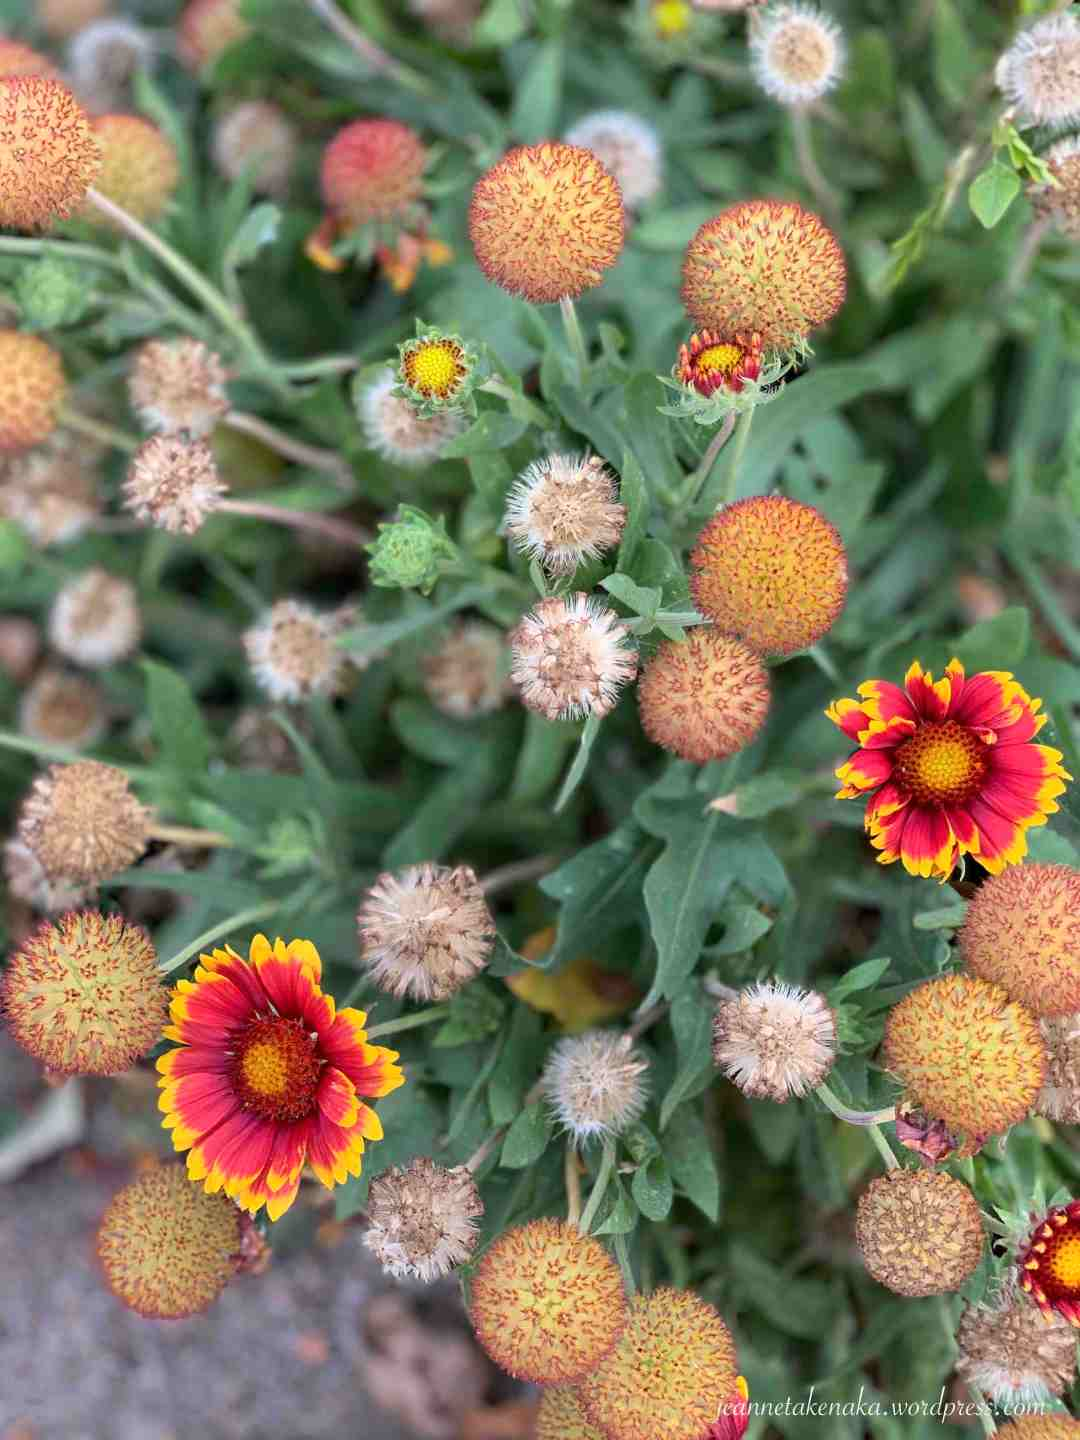 Fall-colored flowers on a bush where there are flowers in all phases of growing, from bud to dead